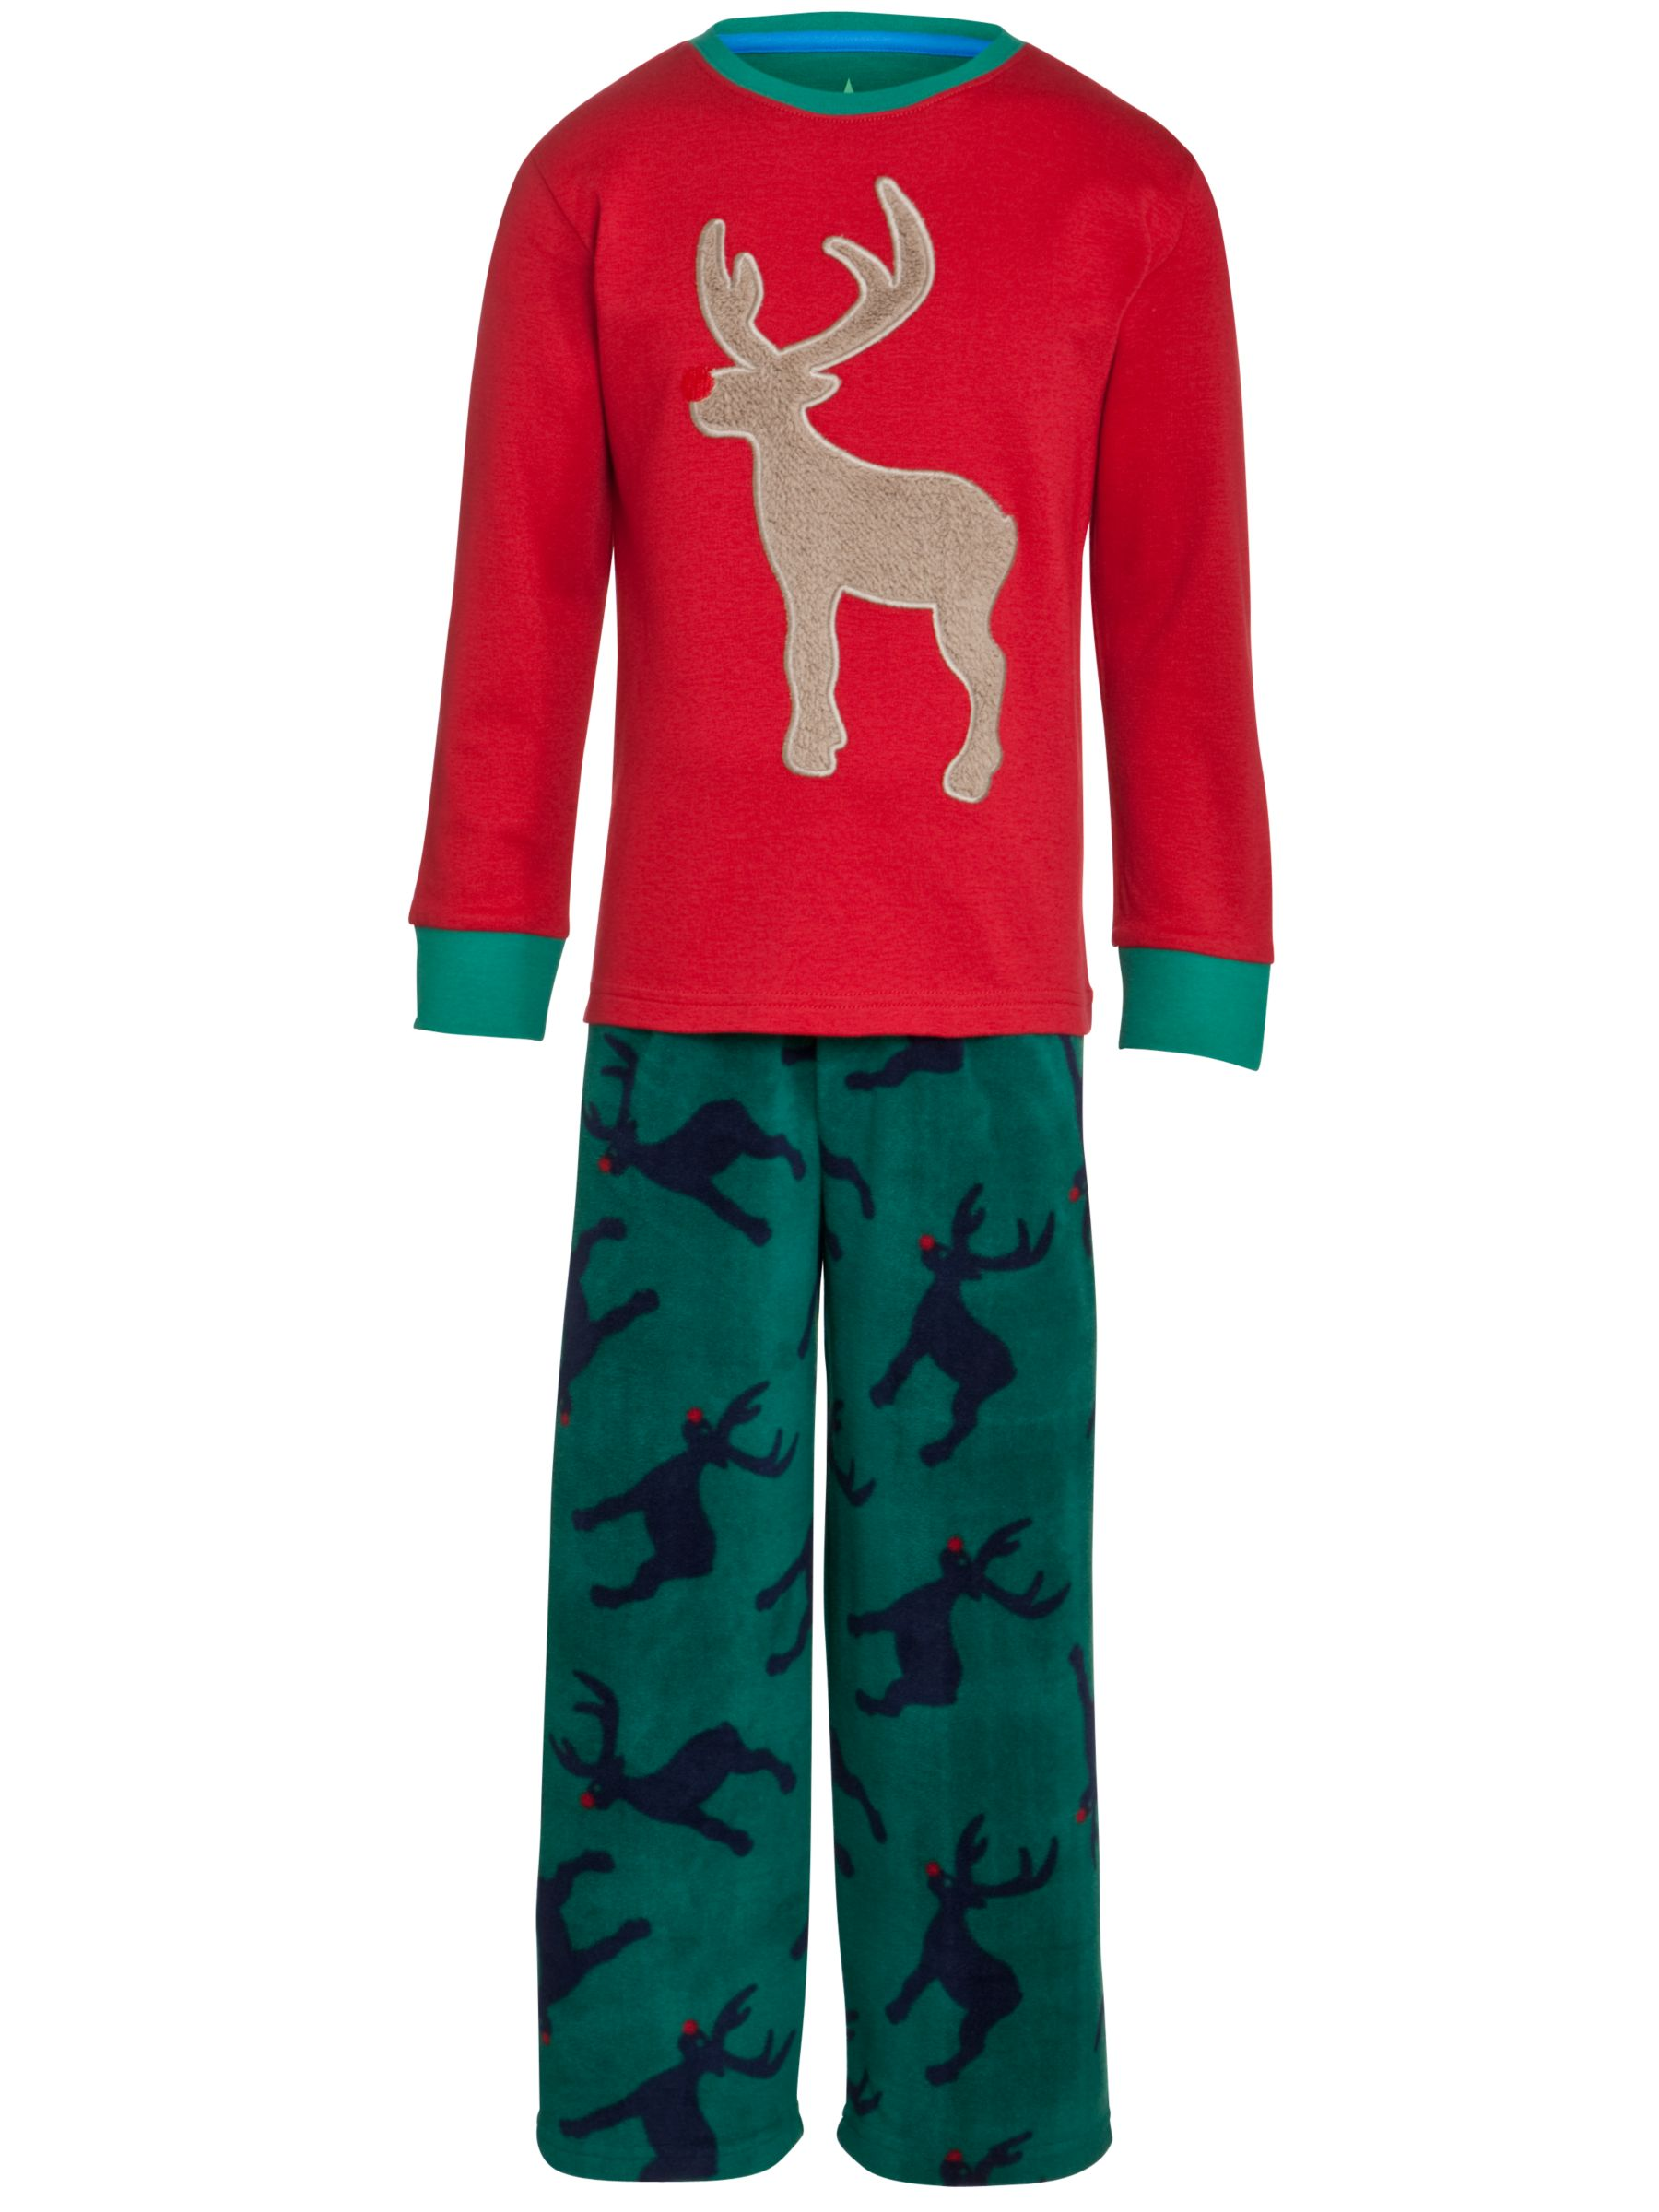 John Lewis Boy Reindeer Fleece Pyjamas, Red/Green